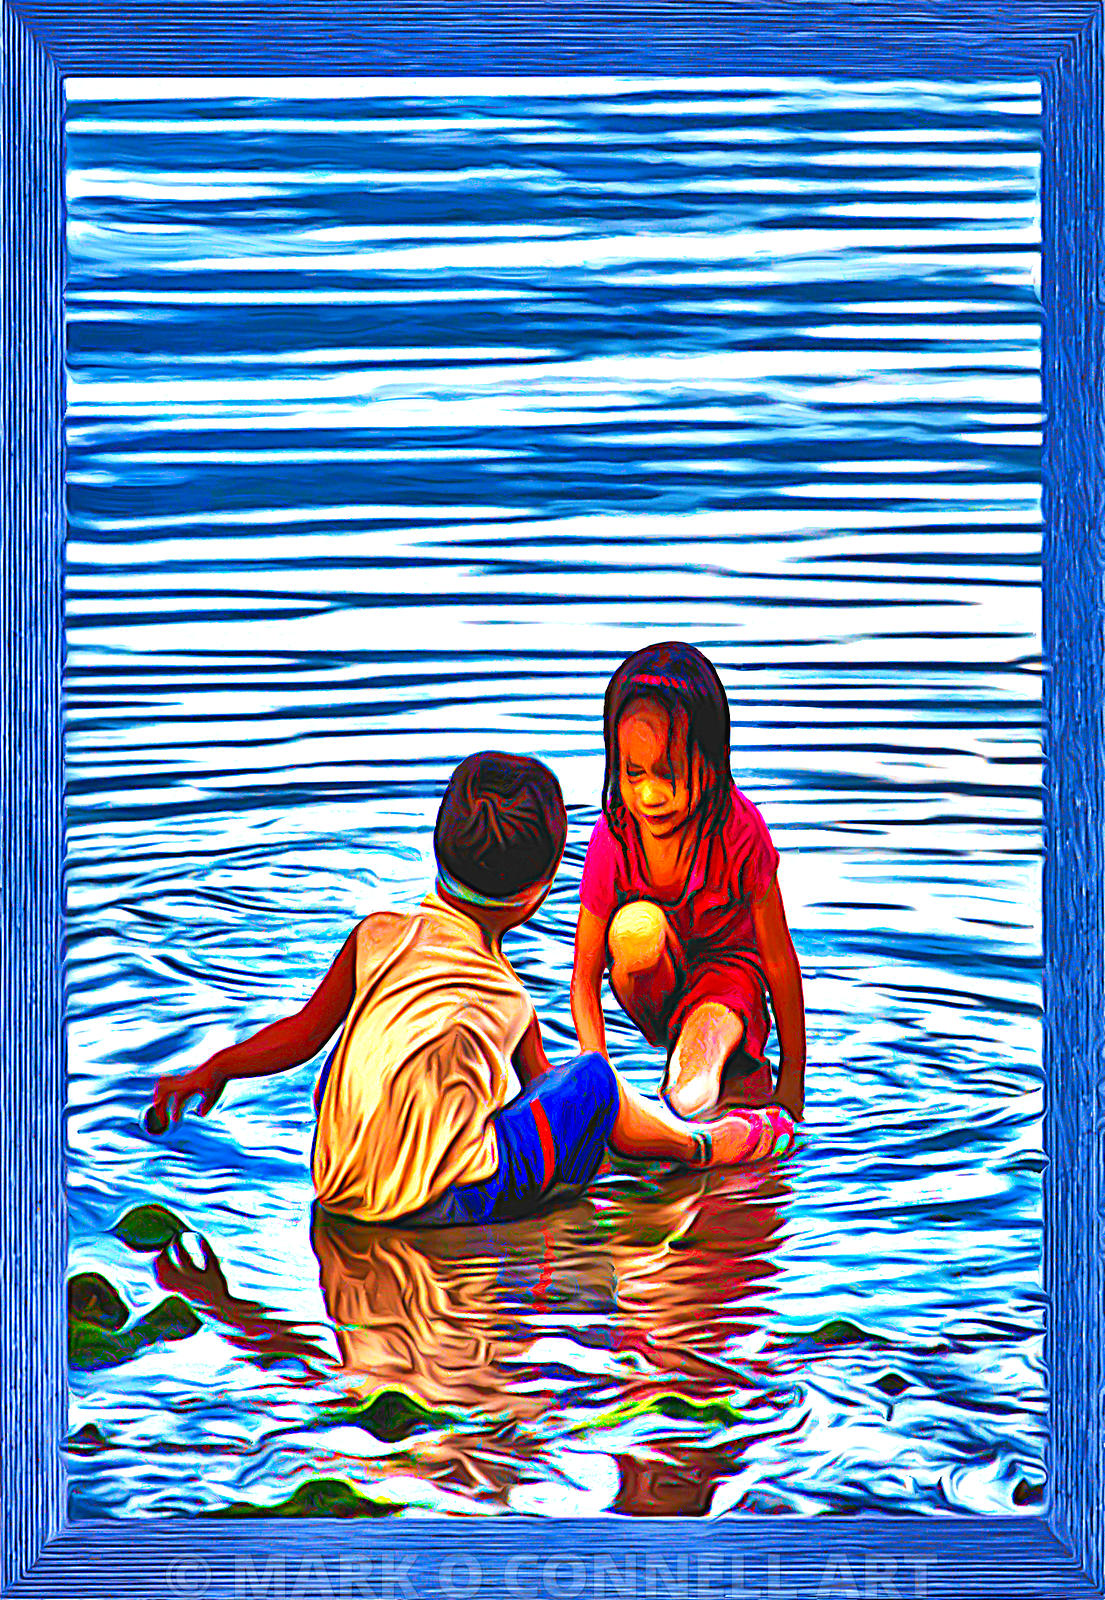 art,painting,children,playing,water,sea,ocean,abstract,girl,boy